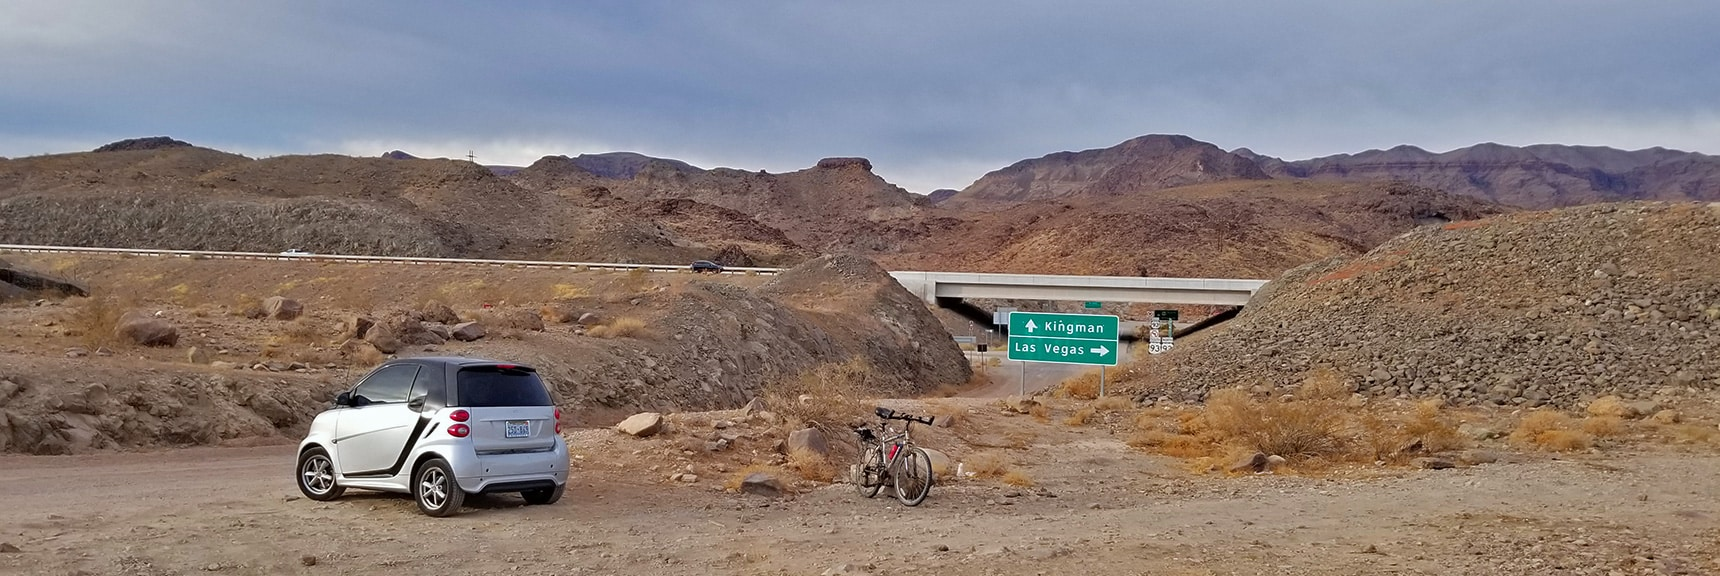 The Adventure Begins at Hwy 93 & Kingman Wash Rd   Fortification Hill   Lake Mead National Recreation Area, Arizona